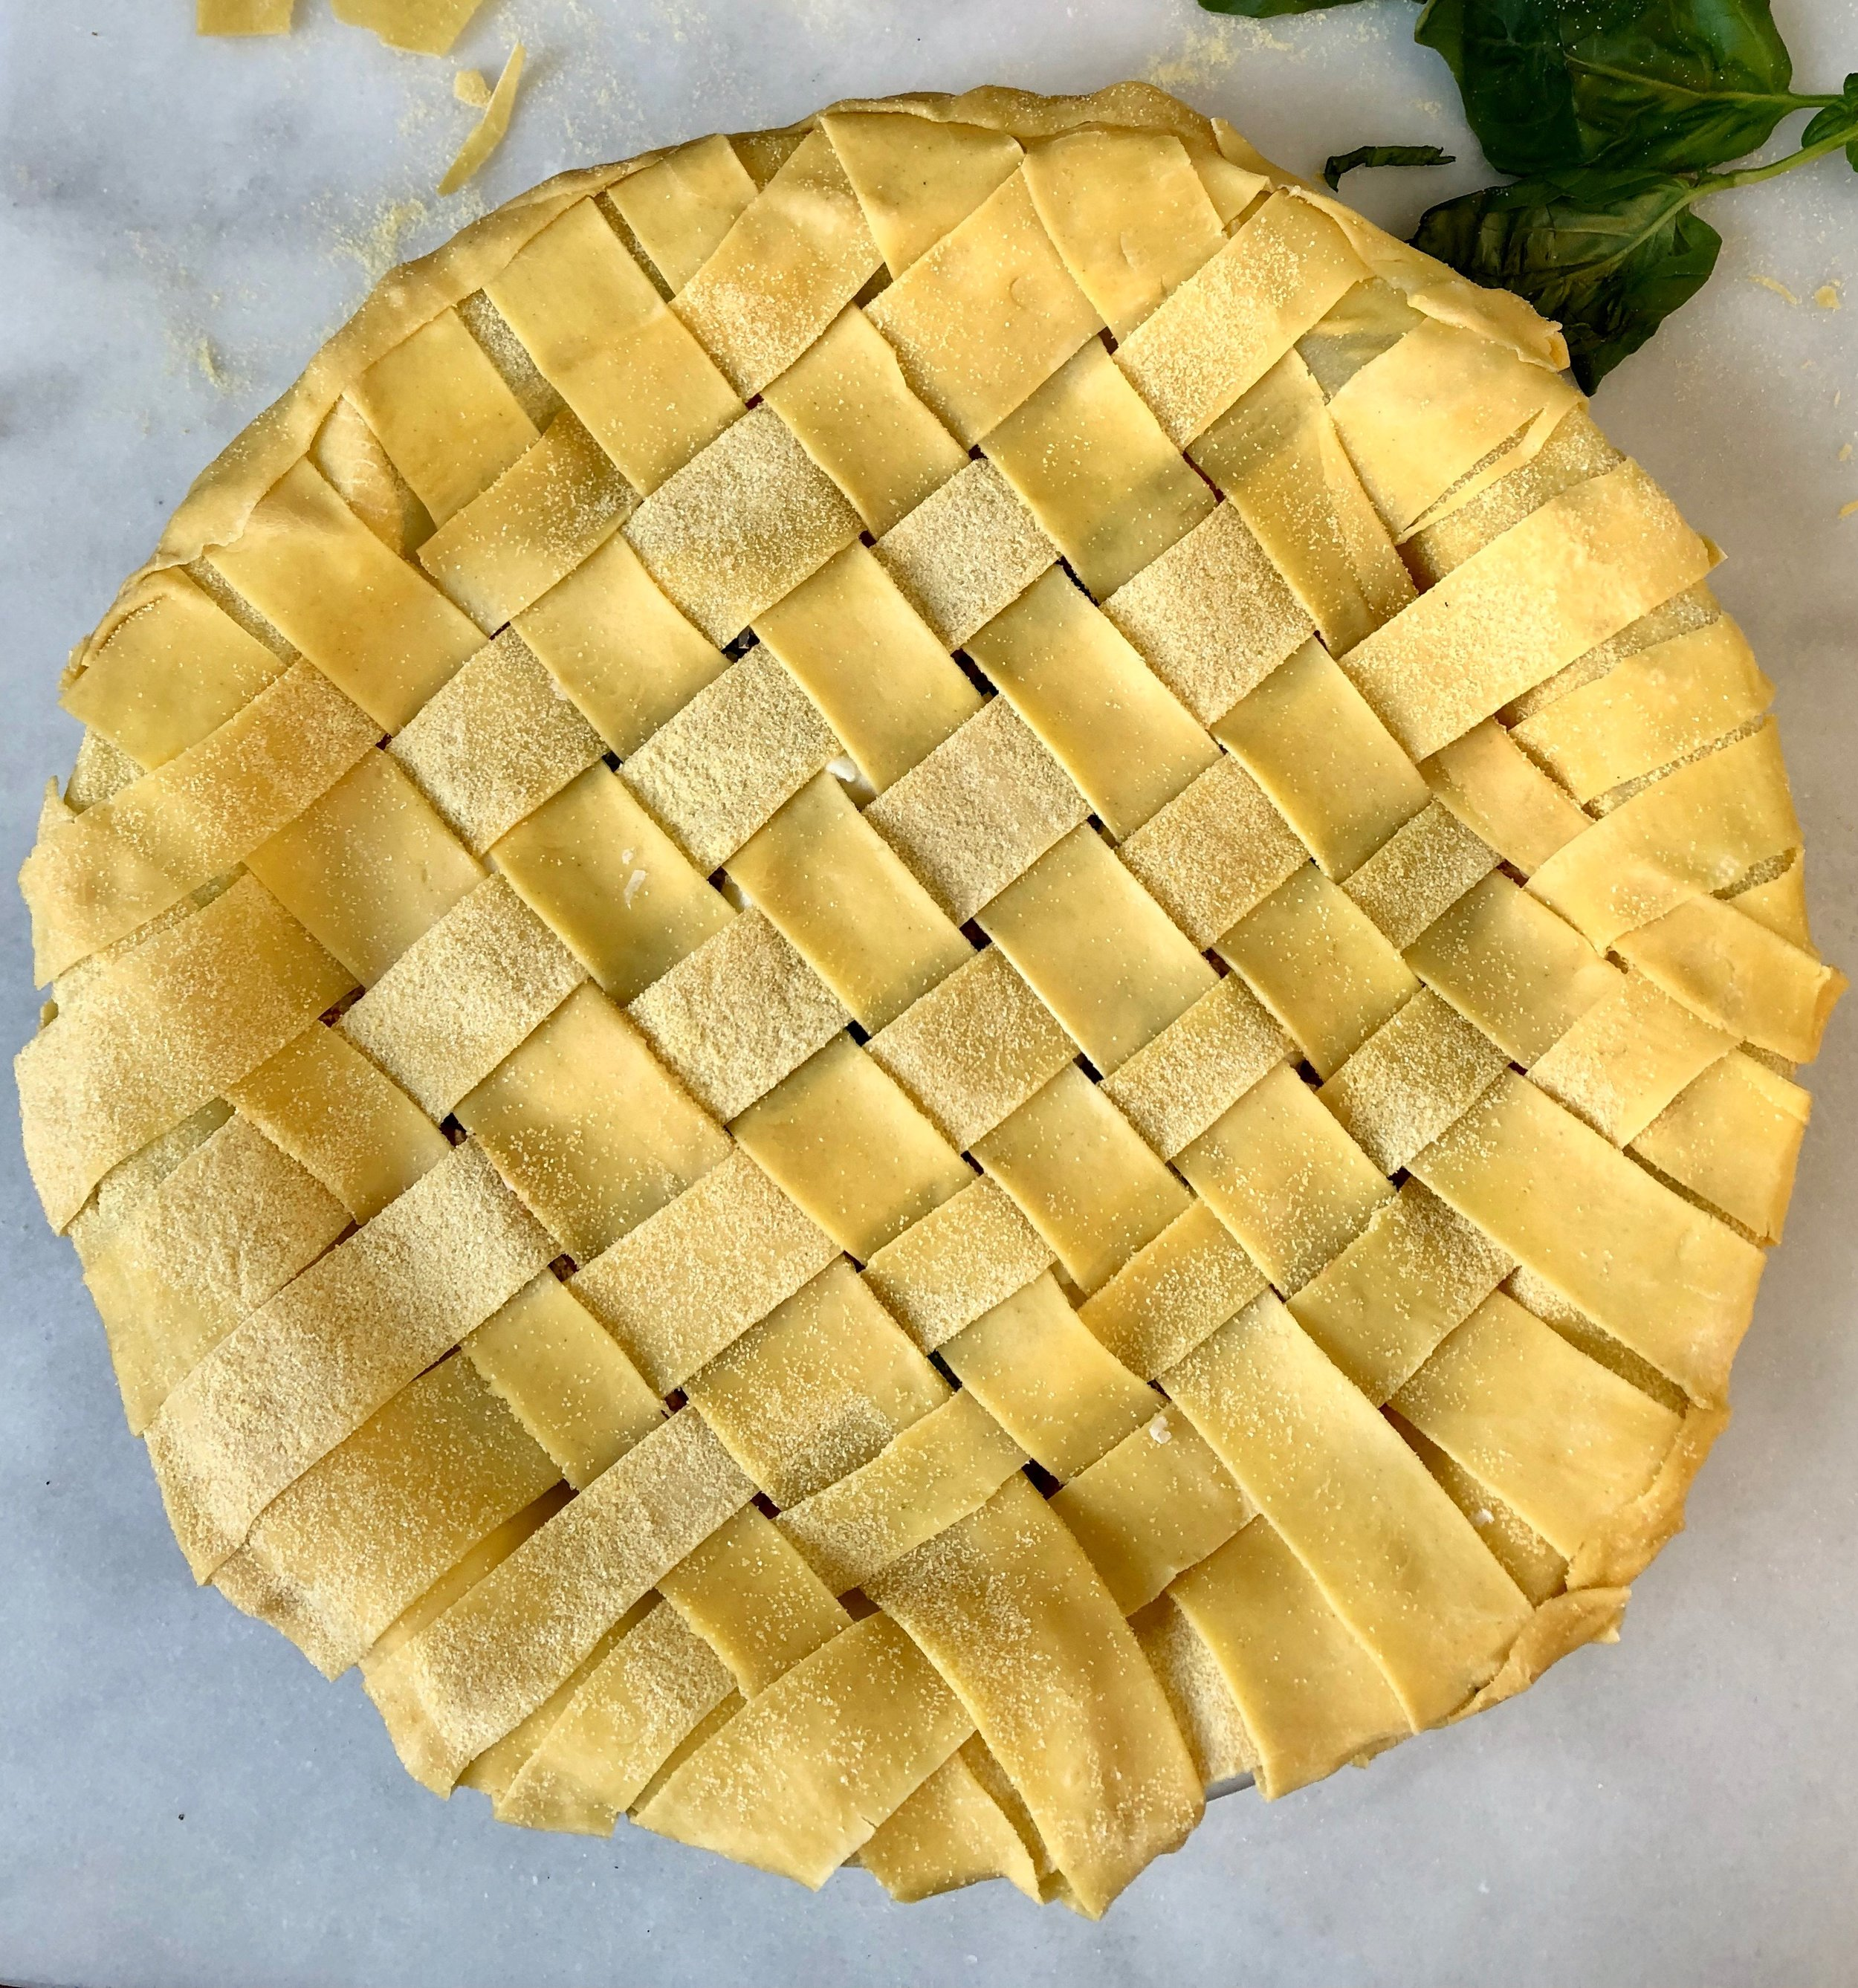 round lasagne lattice pie